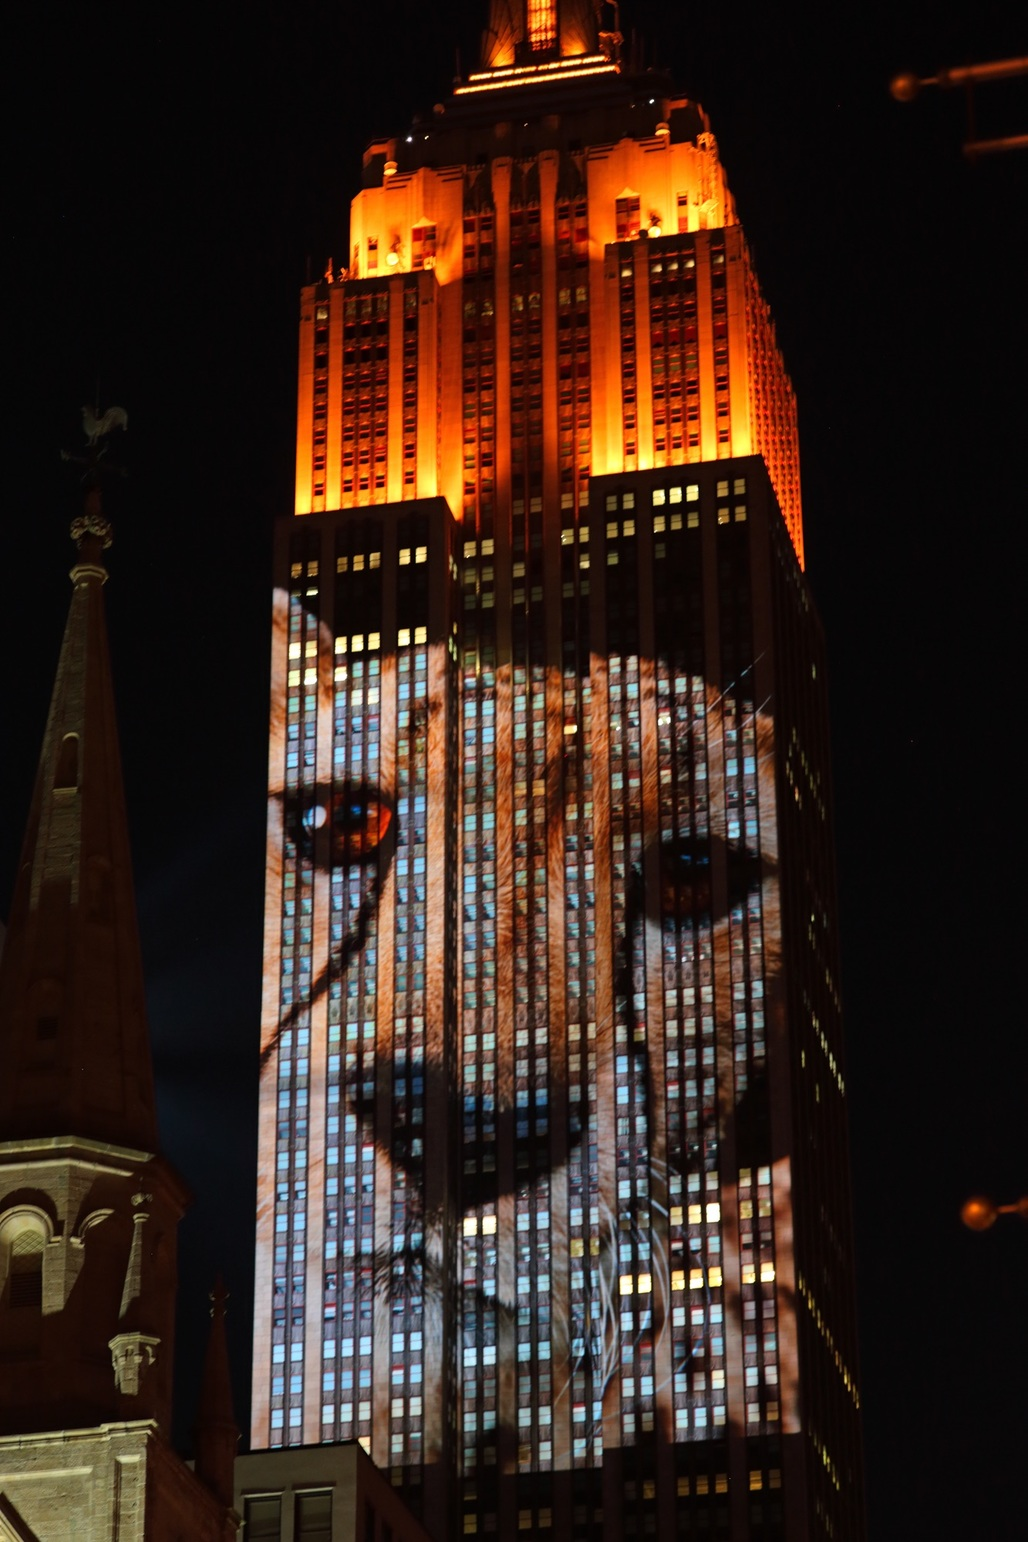 A projected 33-story tall lion on The Empire State Building (photo via ccho)